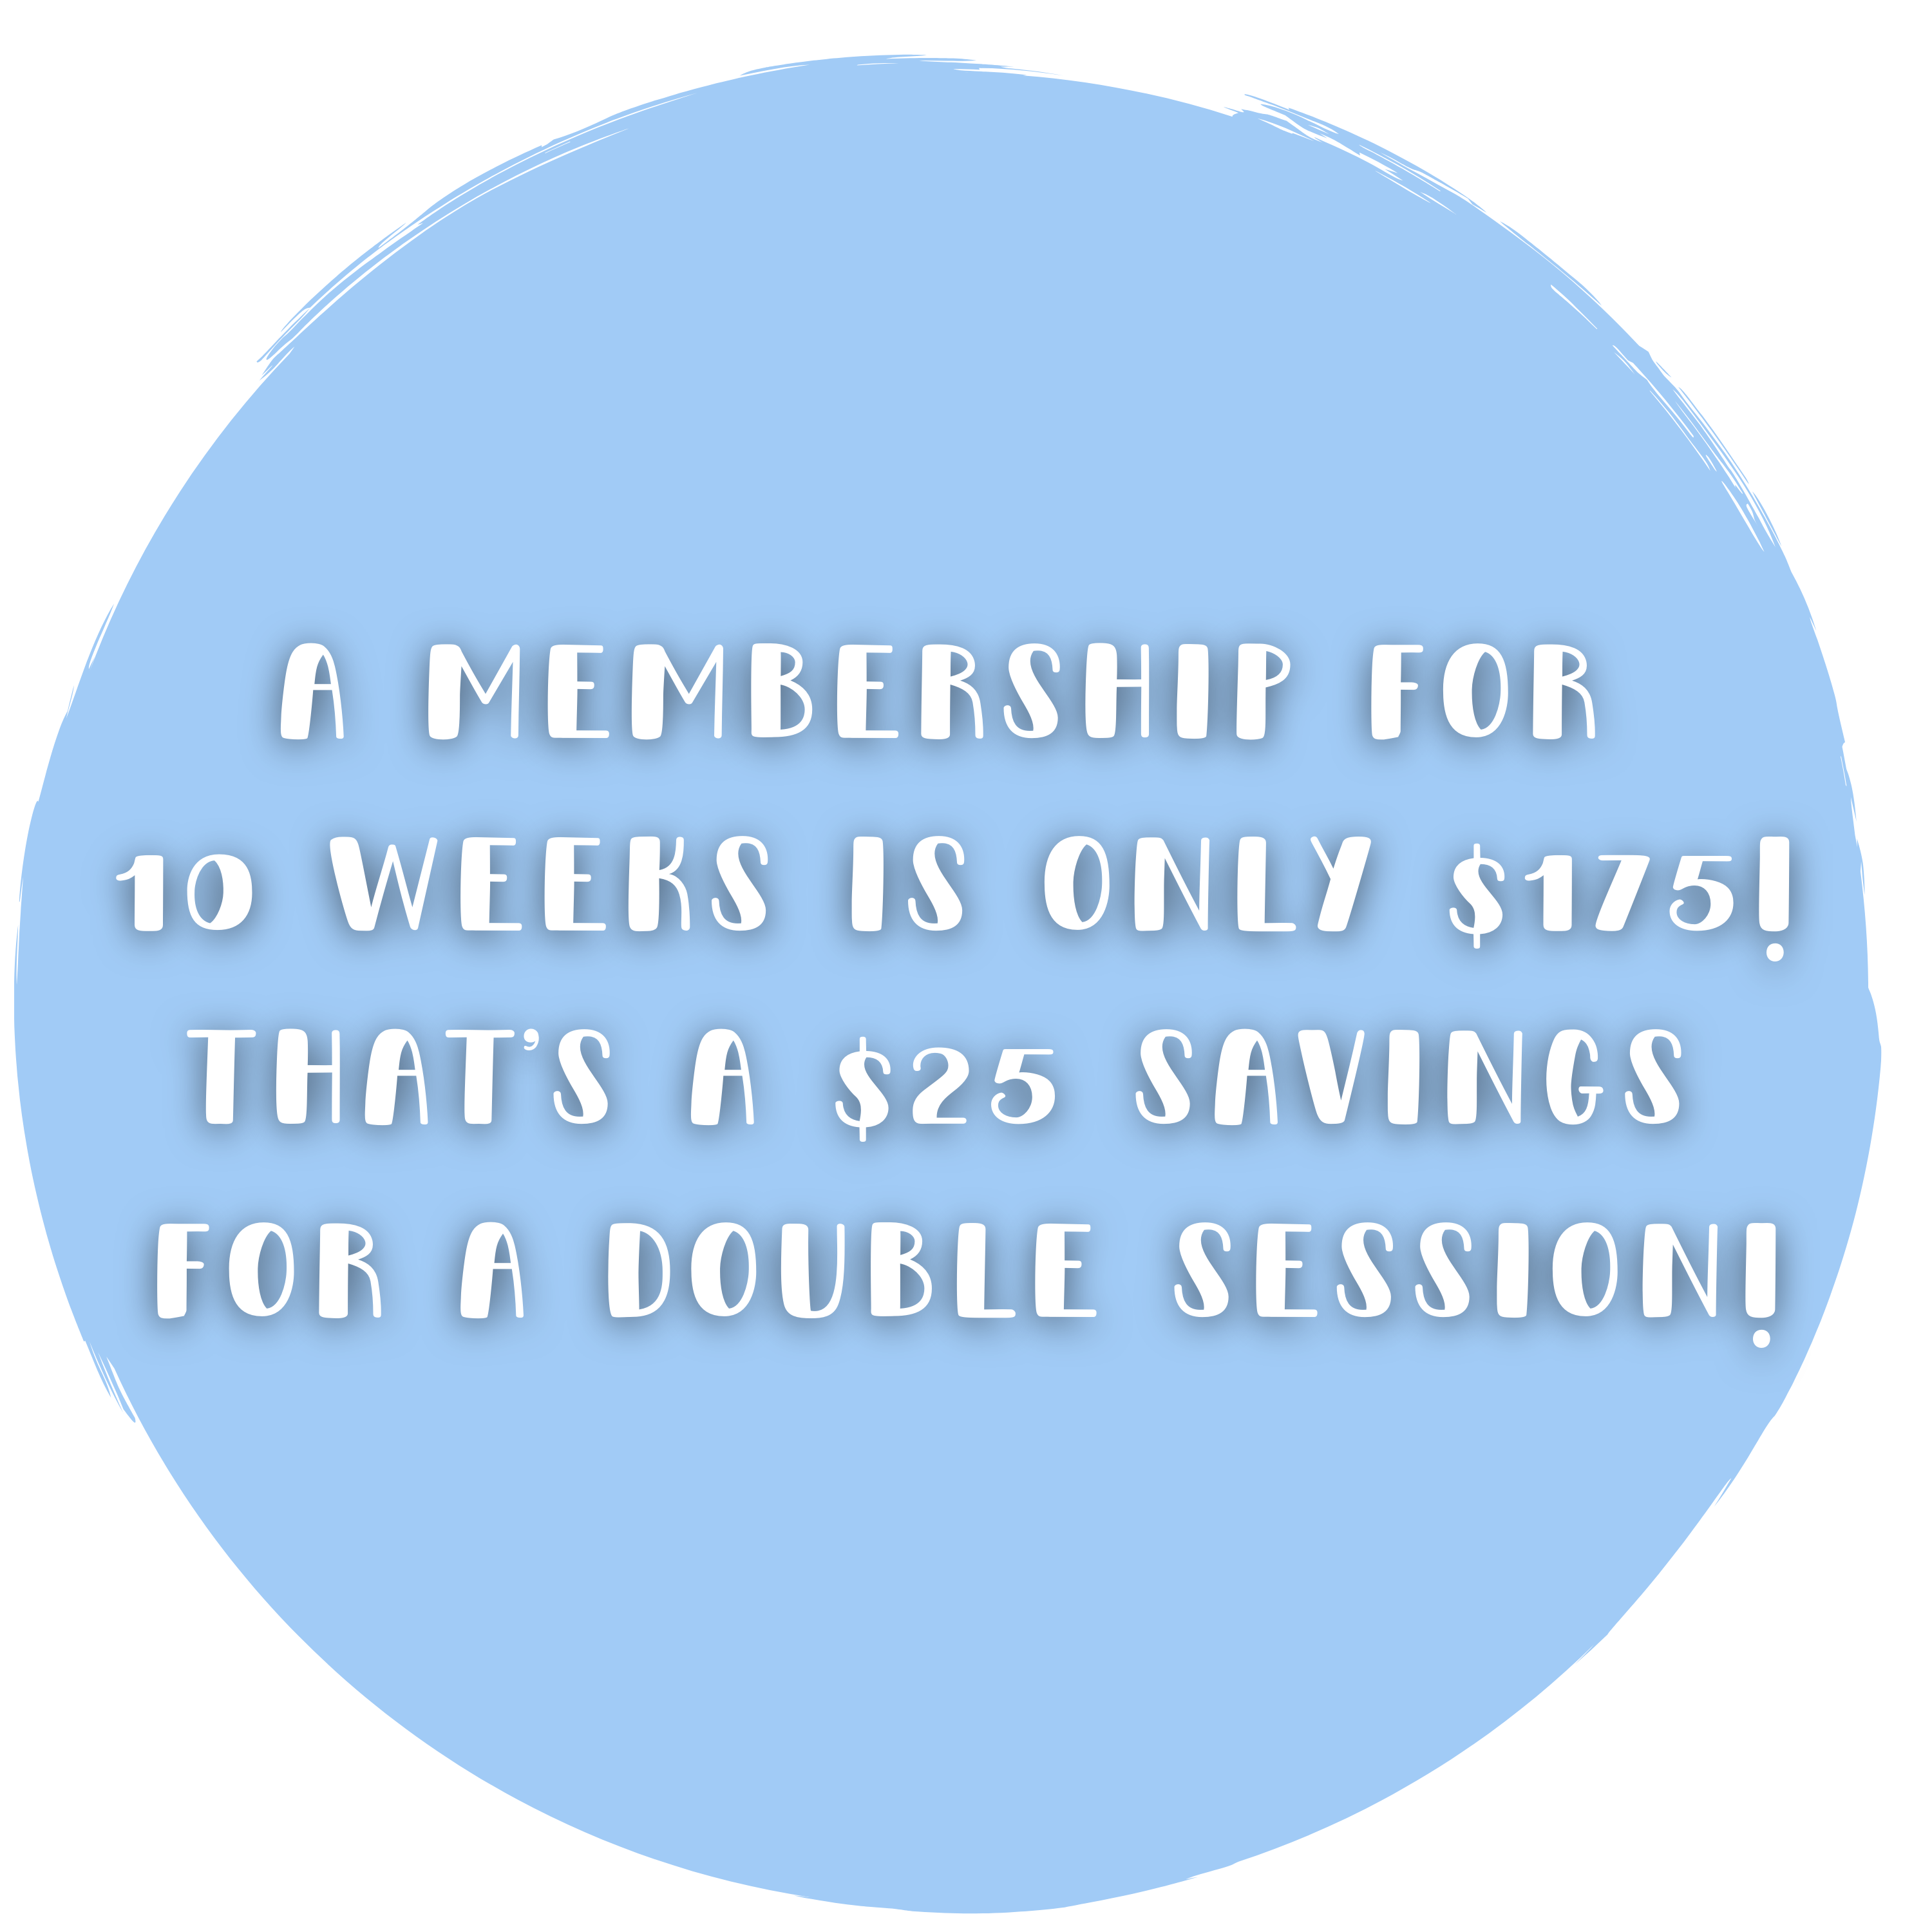 Copy of A membership for 10 weeks is $175! That's a $25 savings for a double session! (3)